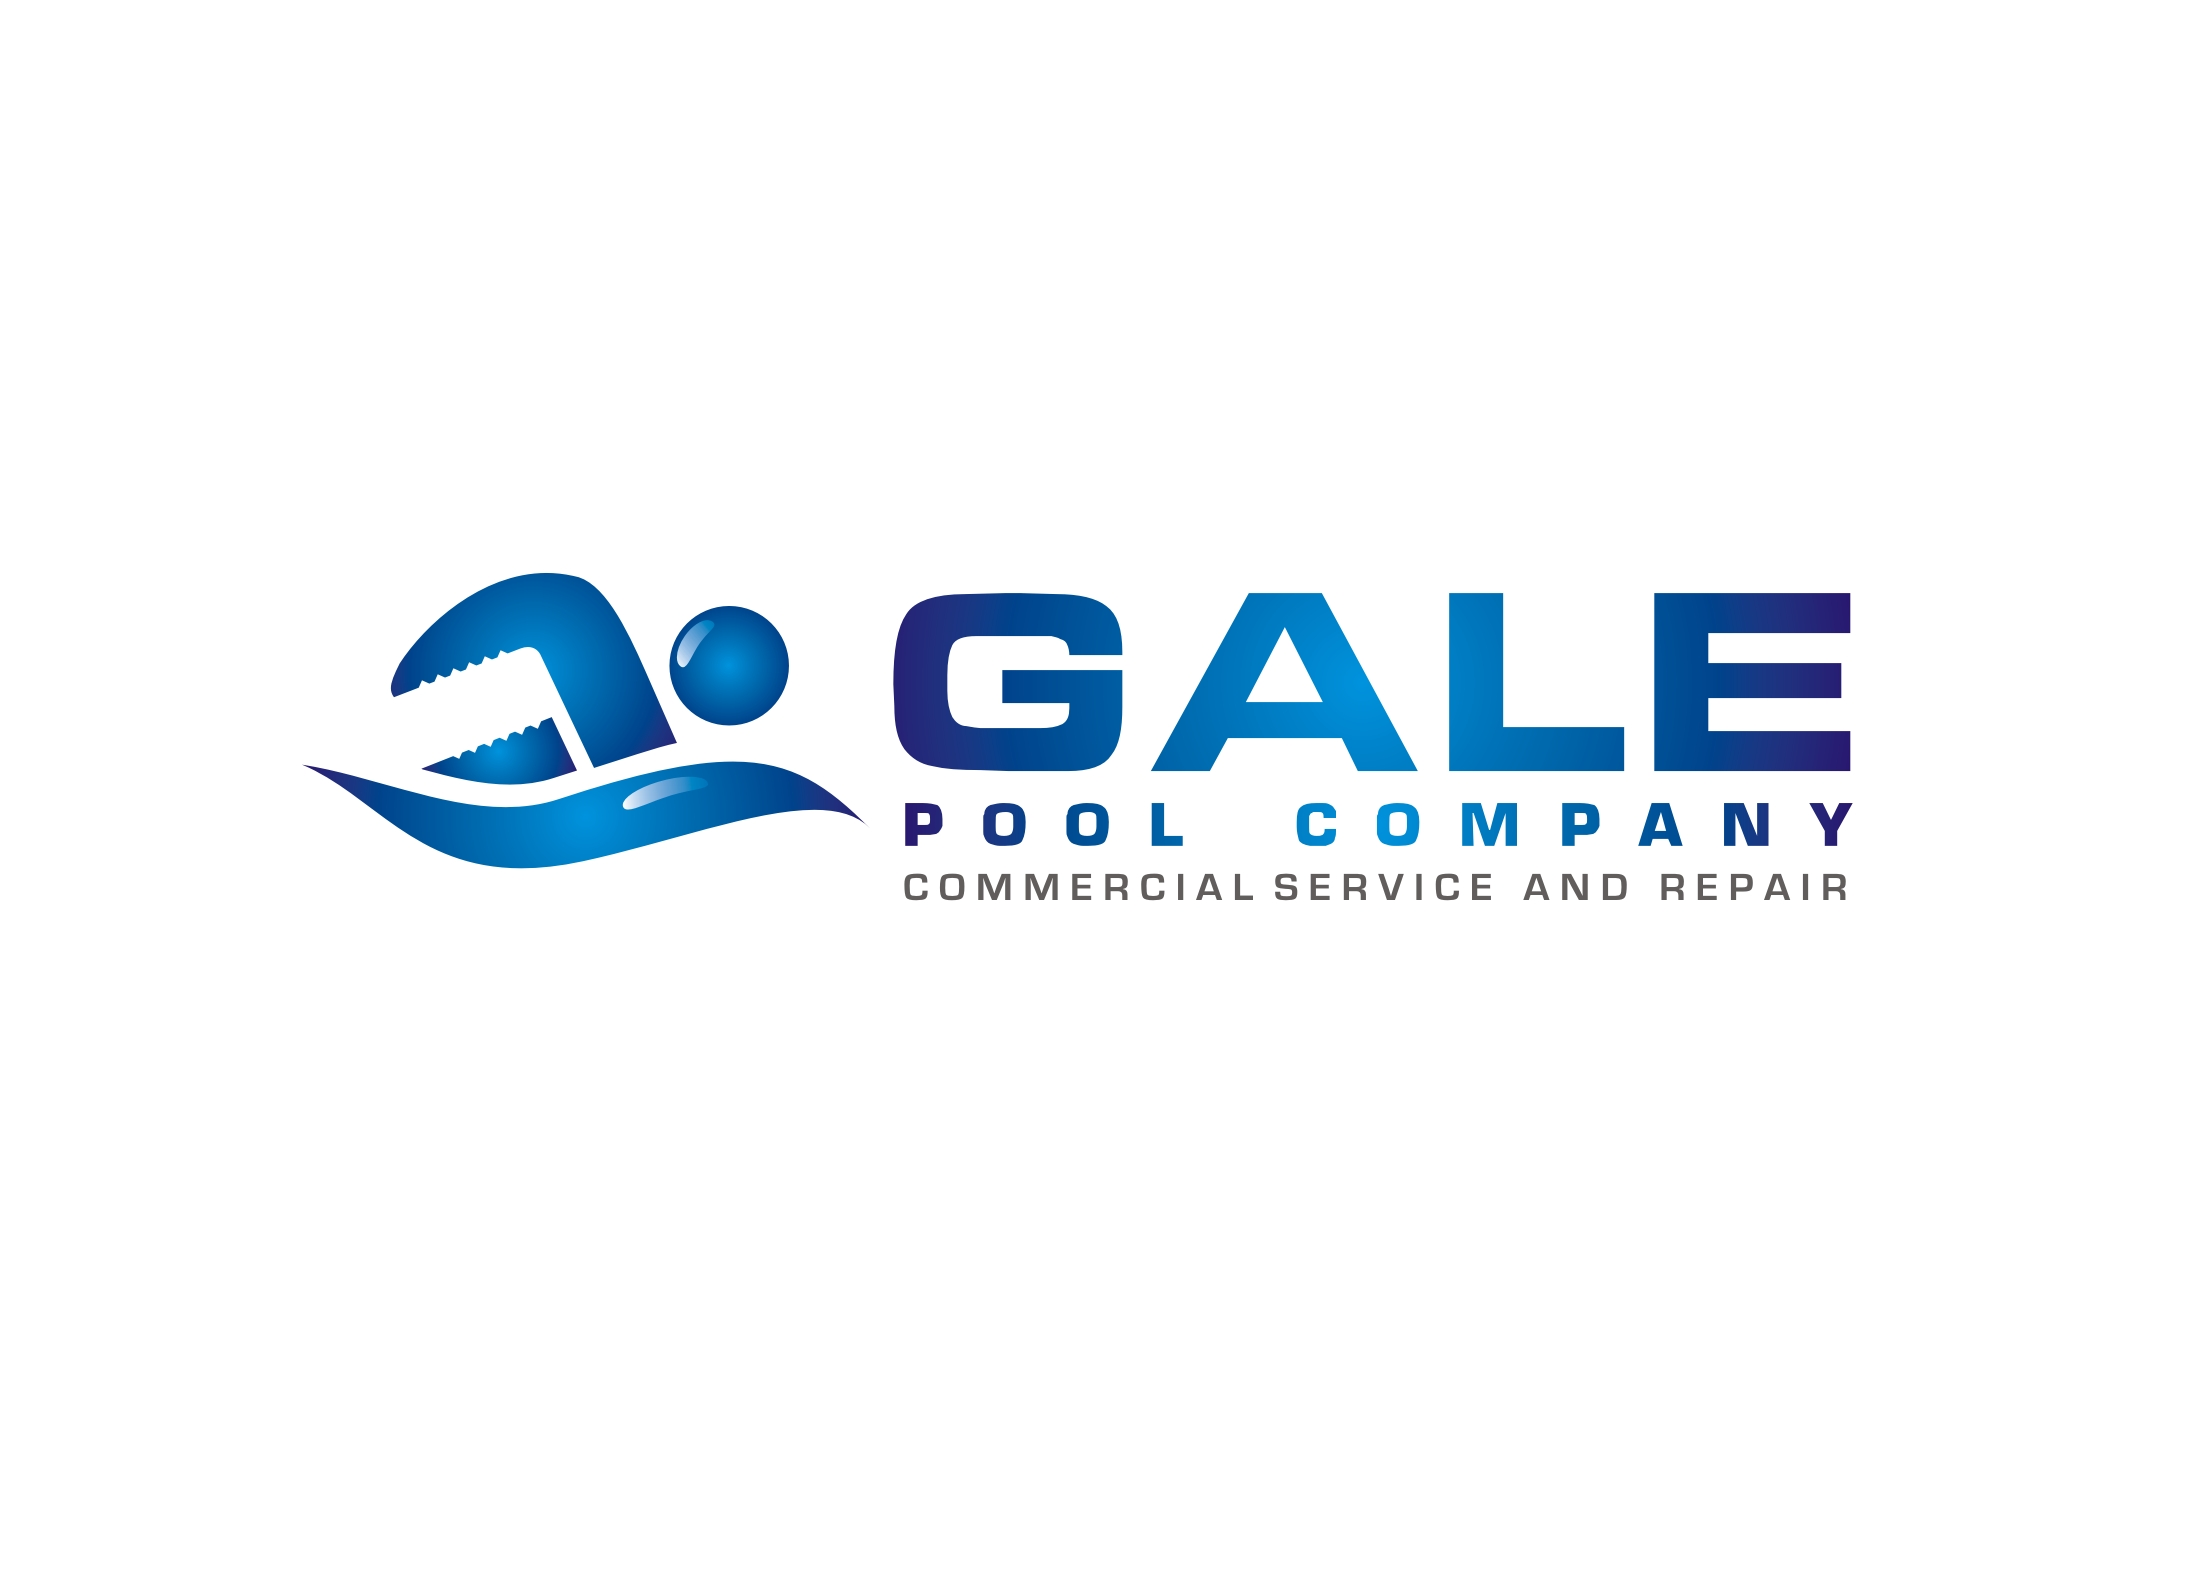 Logo Design by Zdravko Krulj - Entry No. 89 in the Logo Design Contest Imaginative Logo Design for Gale Pool Company.